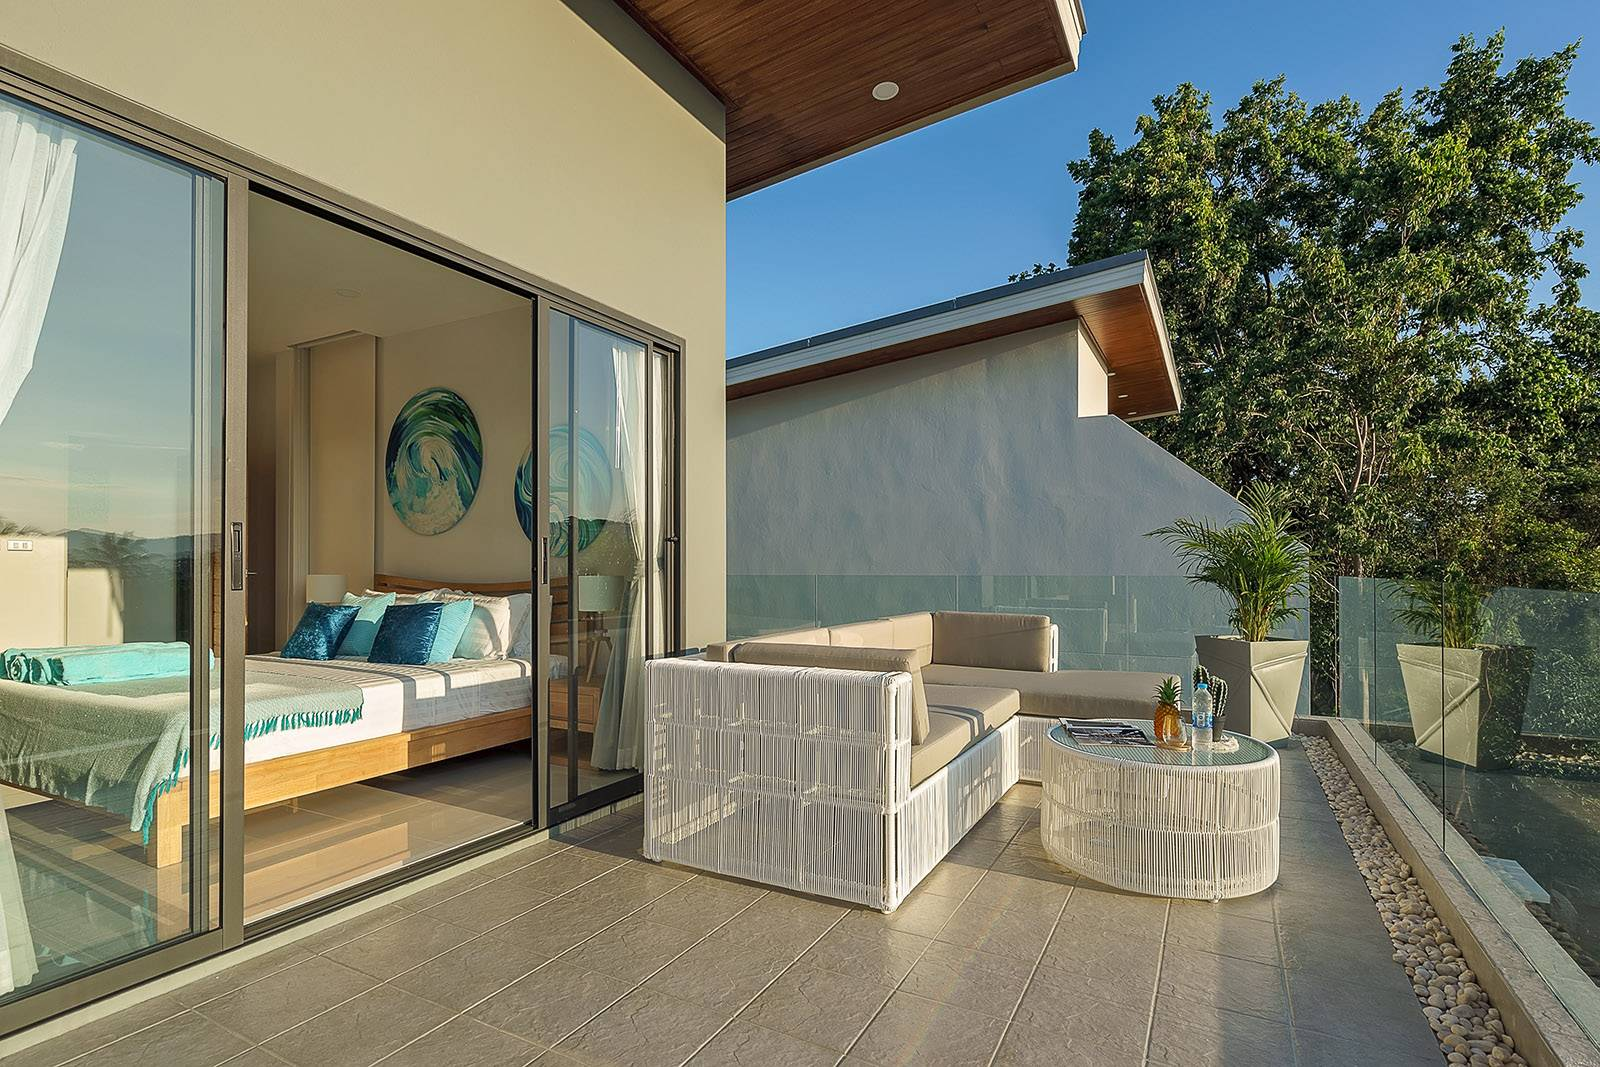 Sense 8 private pool villas with guarantee 7% ROI  : Sense 8 private pool villas with guarantee 7% ROI